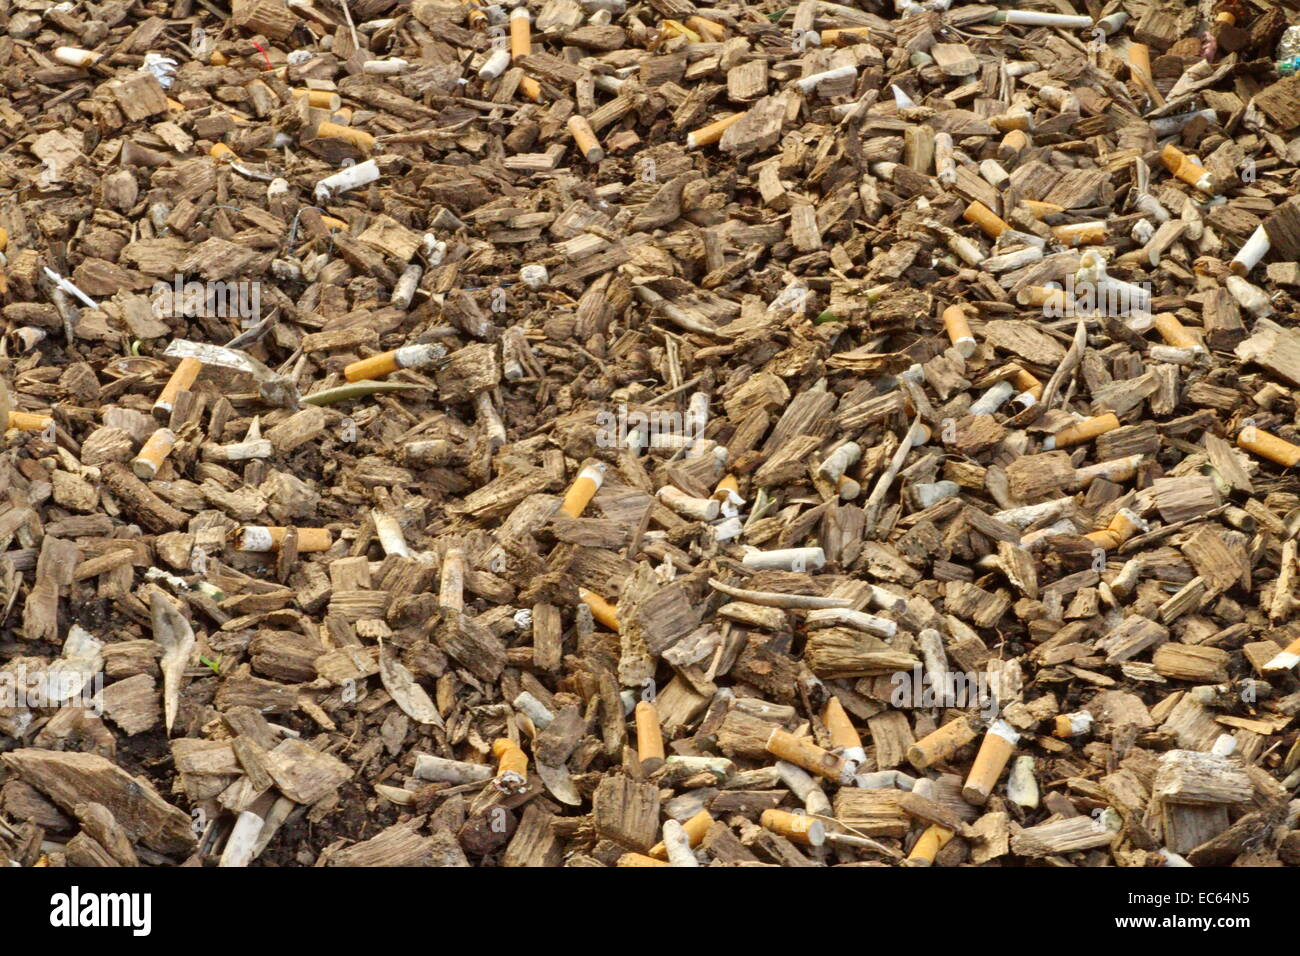 Dirty Wood Chips ~ Many cigarette butts among lots of wood chip stock photo